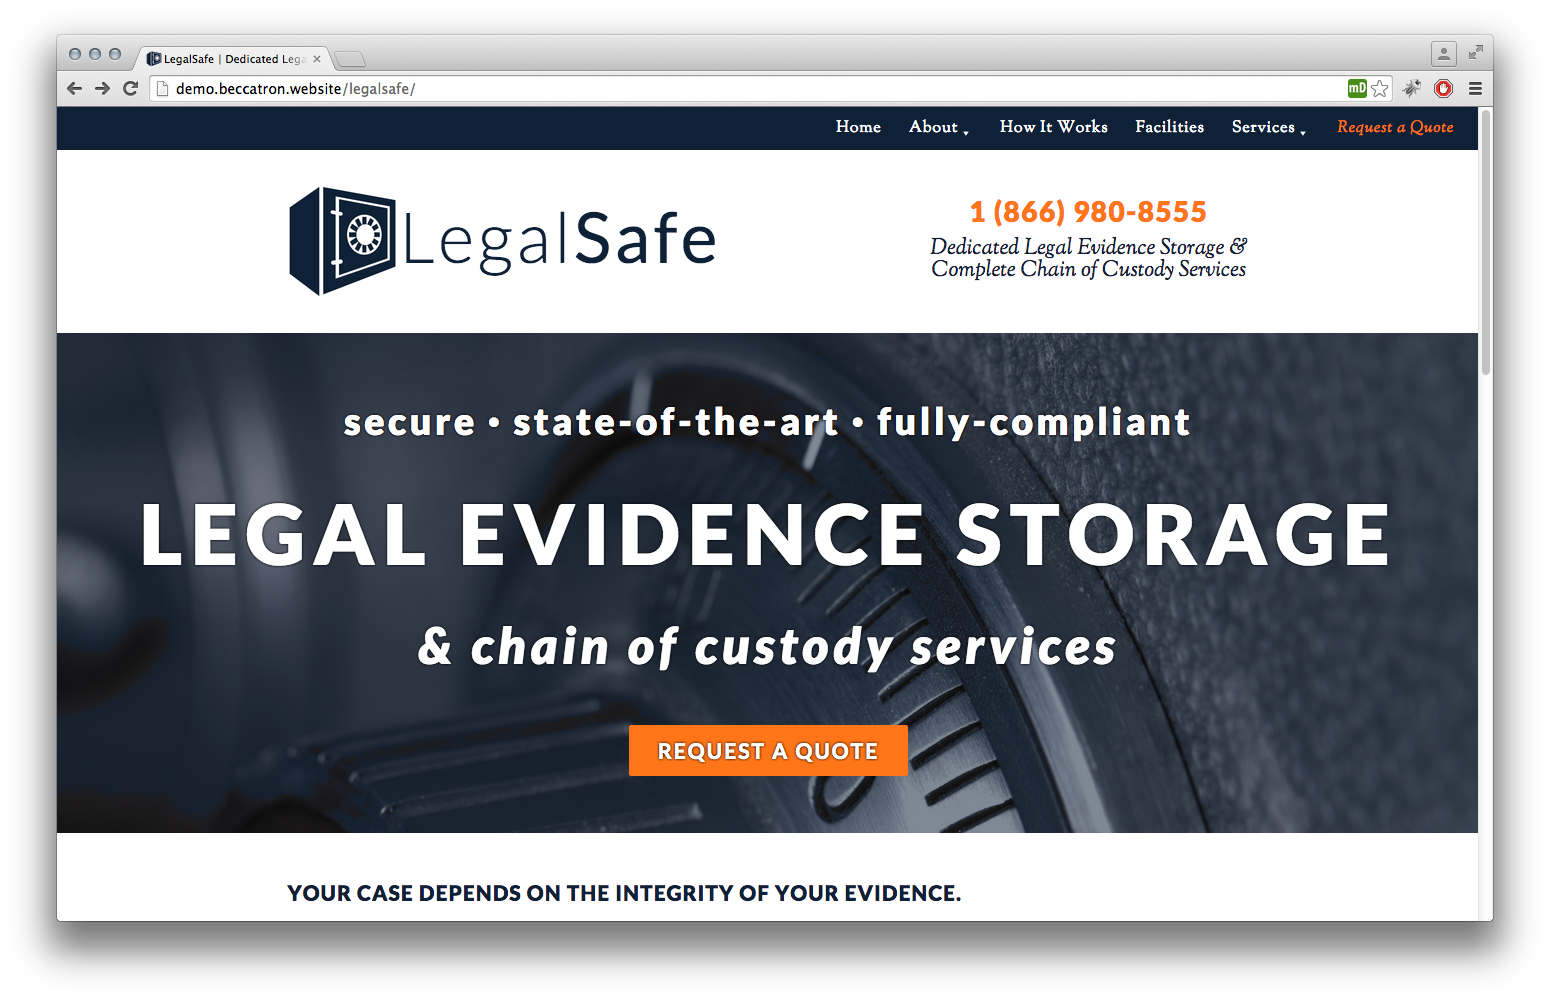 LegalSafe Website & Identity